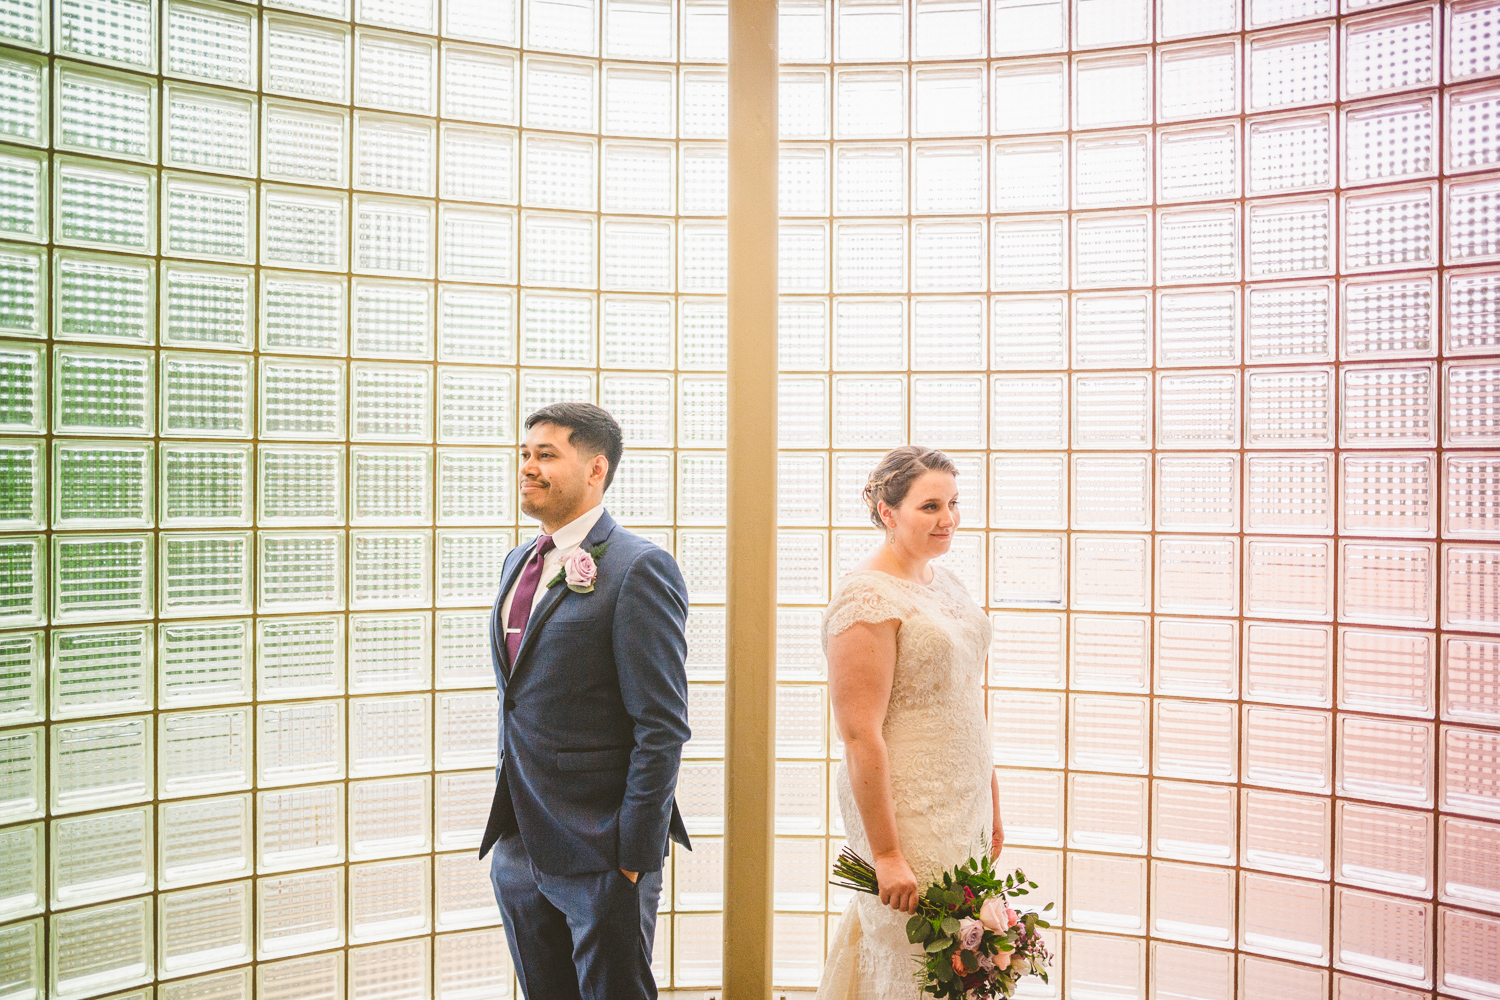 011 - amazing colorful photo of wedded couple dc wedding photographer nathan mitchell.jpg